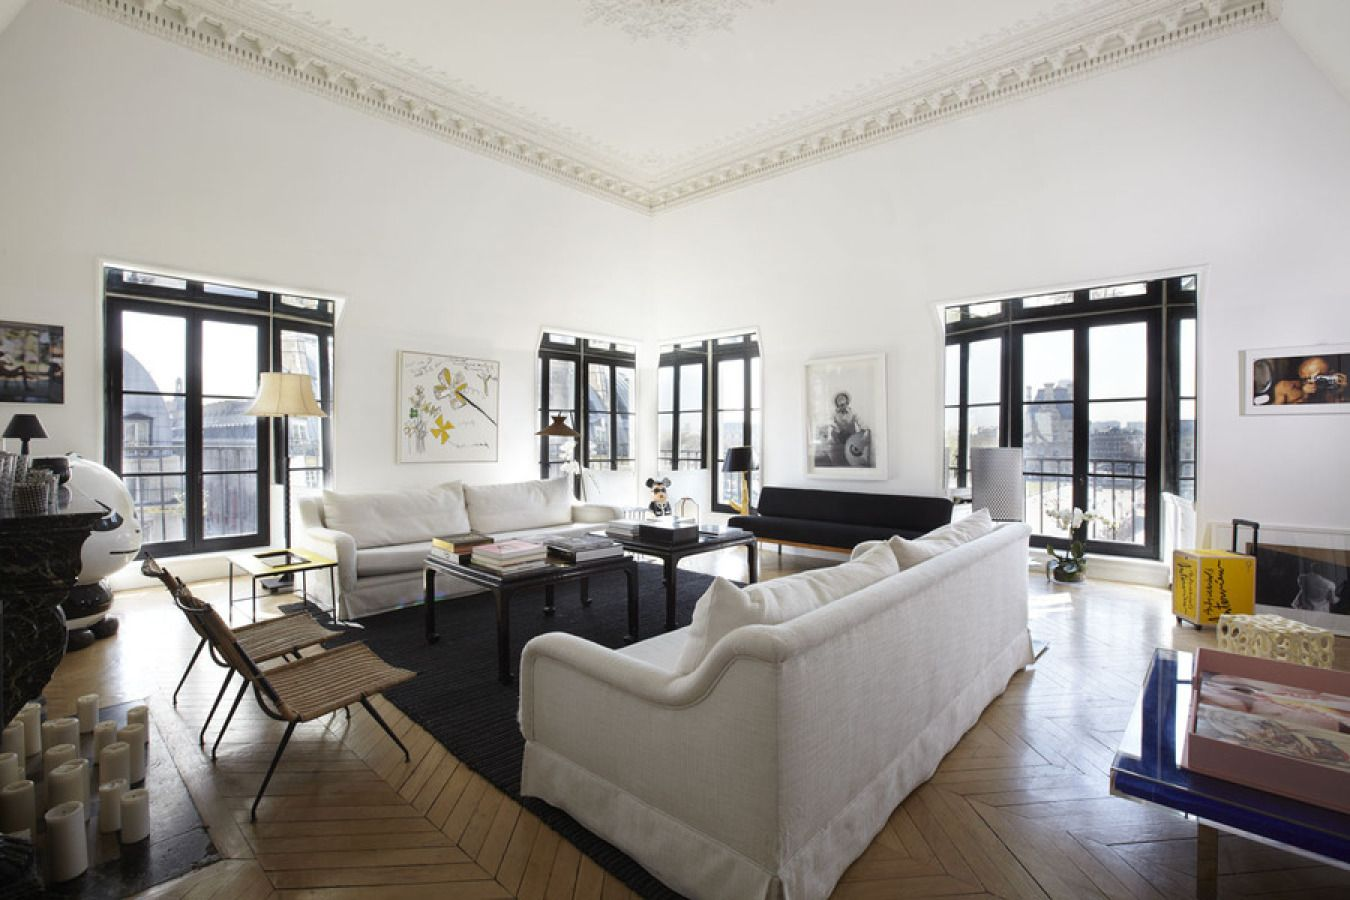 Sarah Lavoines is the very definition of fabulous. She is a decorator known for her insanely honed contemporary Parisian approach to design and attention to both color and quality. Her spaces tend to marry form and function in a way